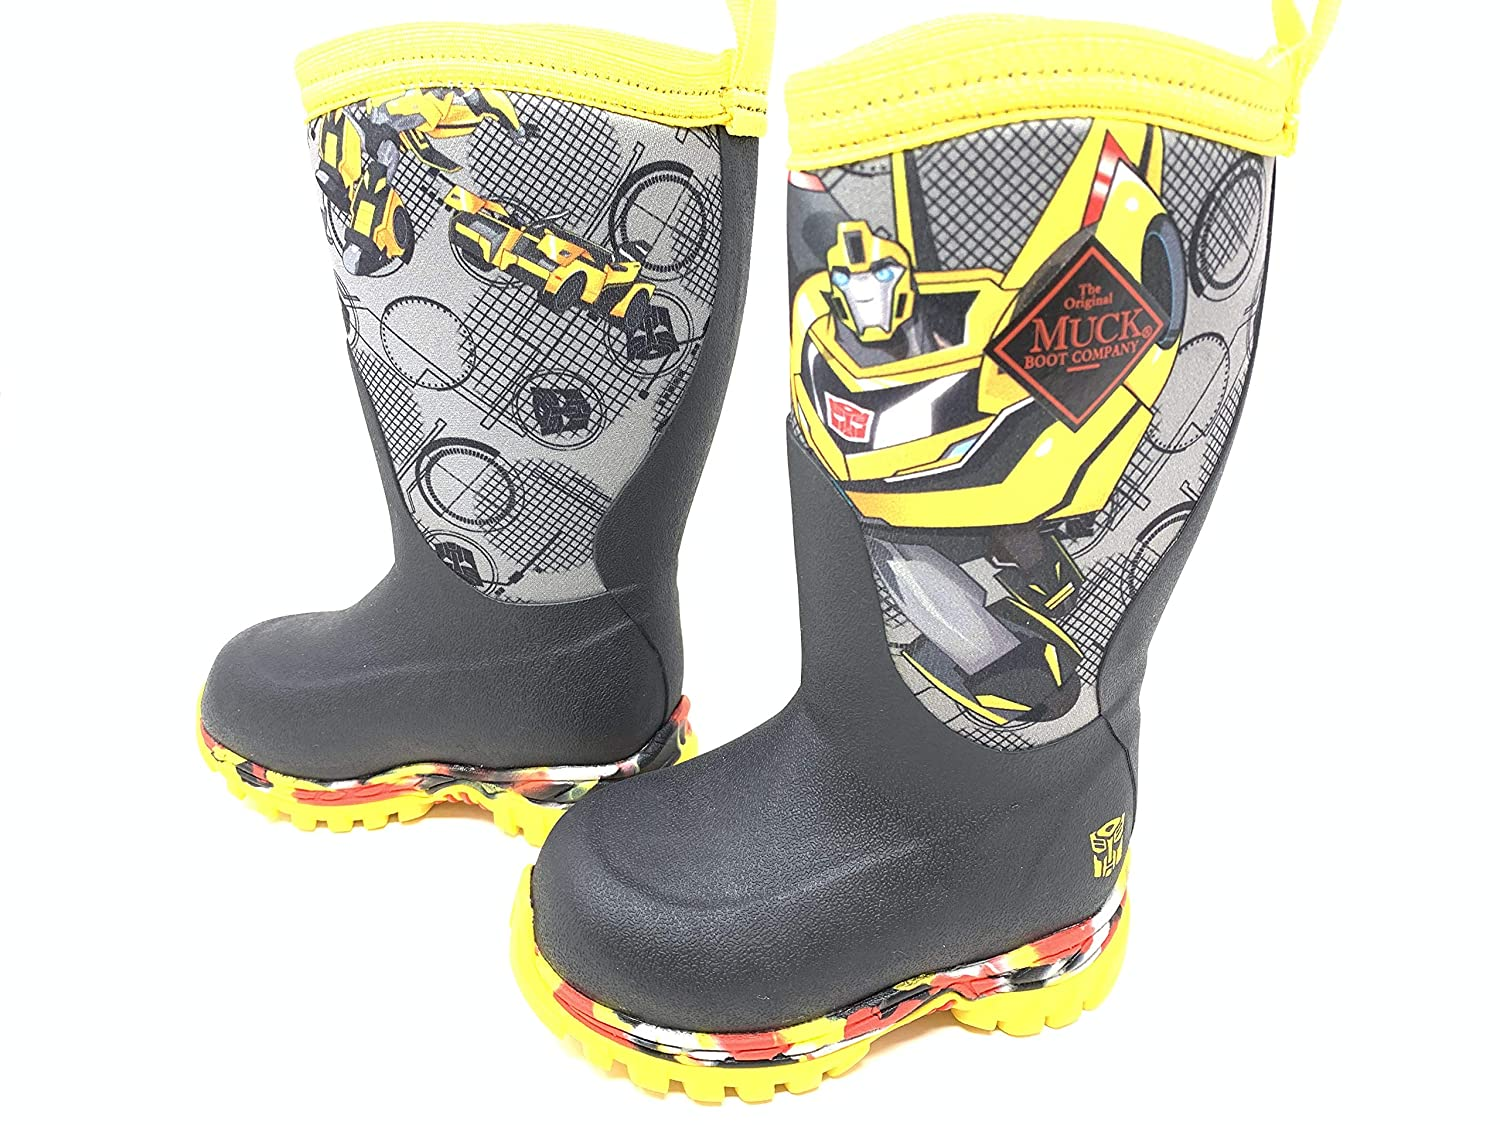 Muck Boot Boys Toddlers Rugged II Transformers Bumble Bee Boots Size 9